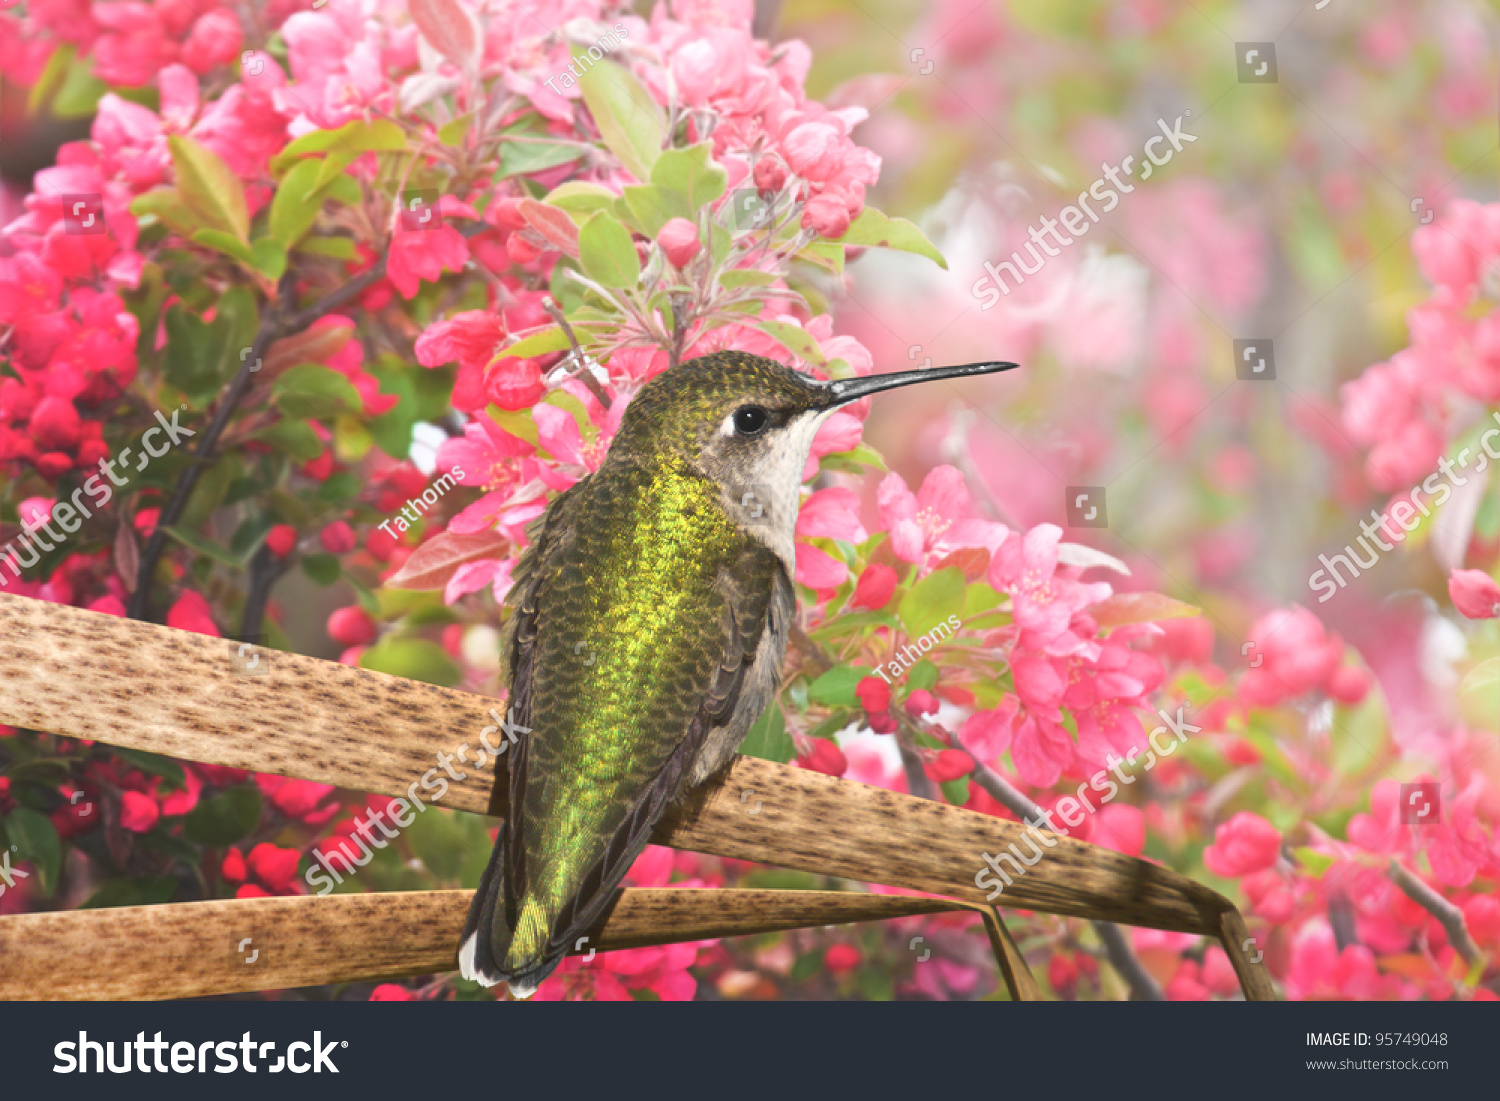 stock-photo-hummingbird-enjoying-apple-b